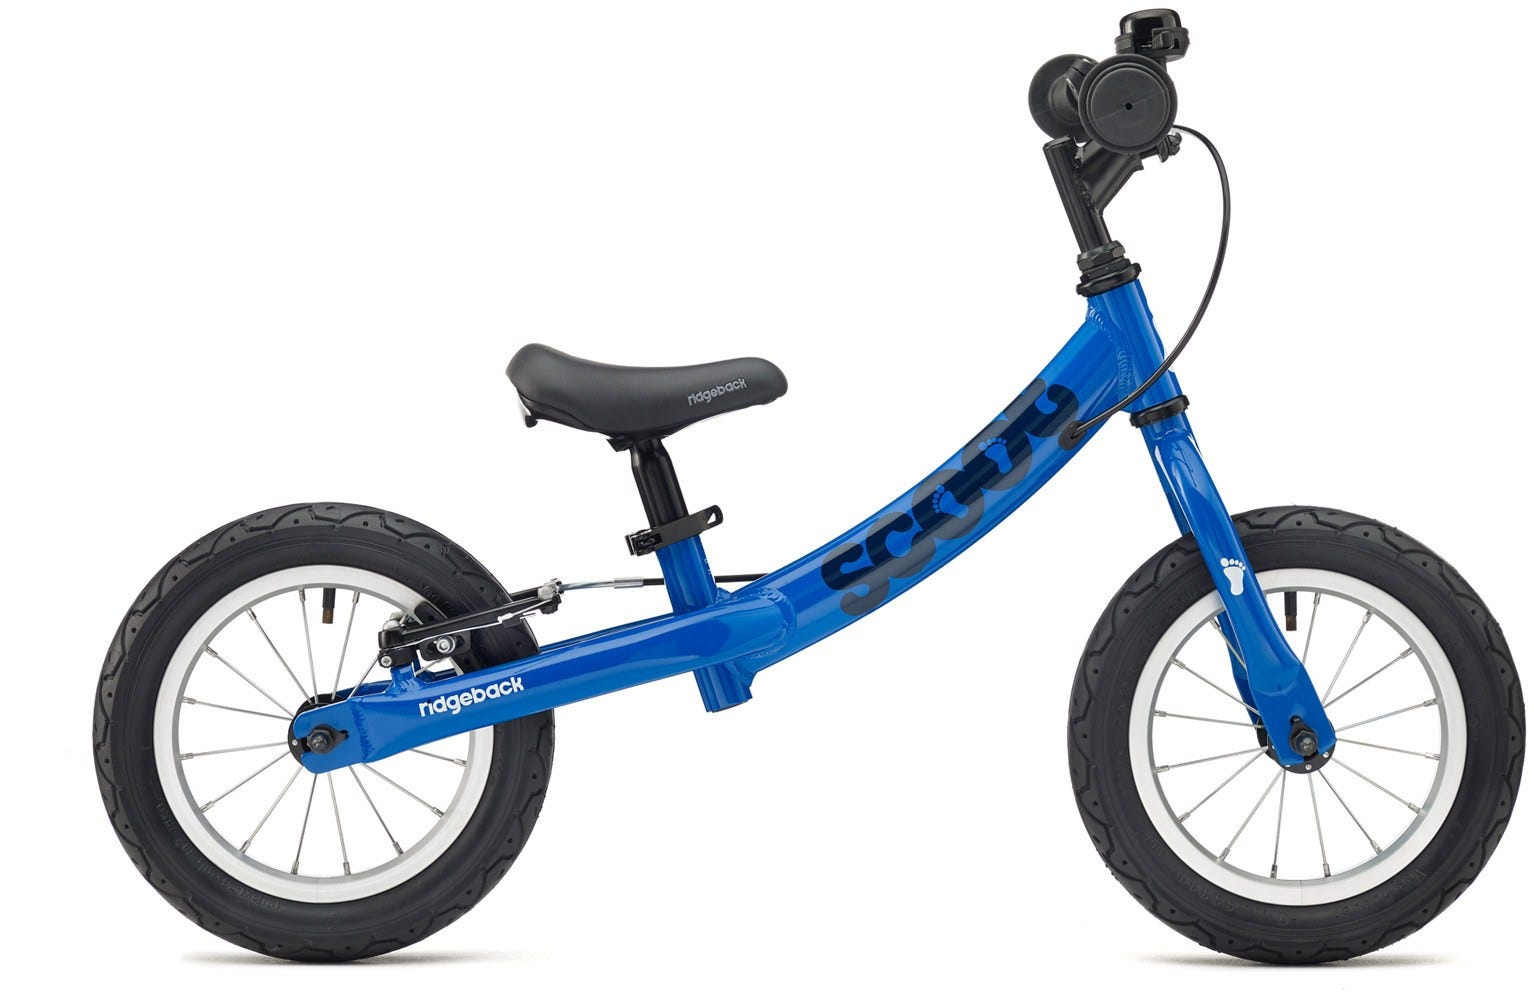 Ridgeback Scoot beginner bike blue Bike sample (unused)